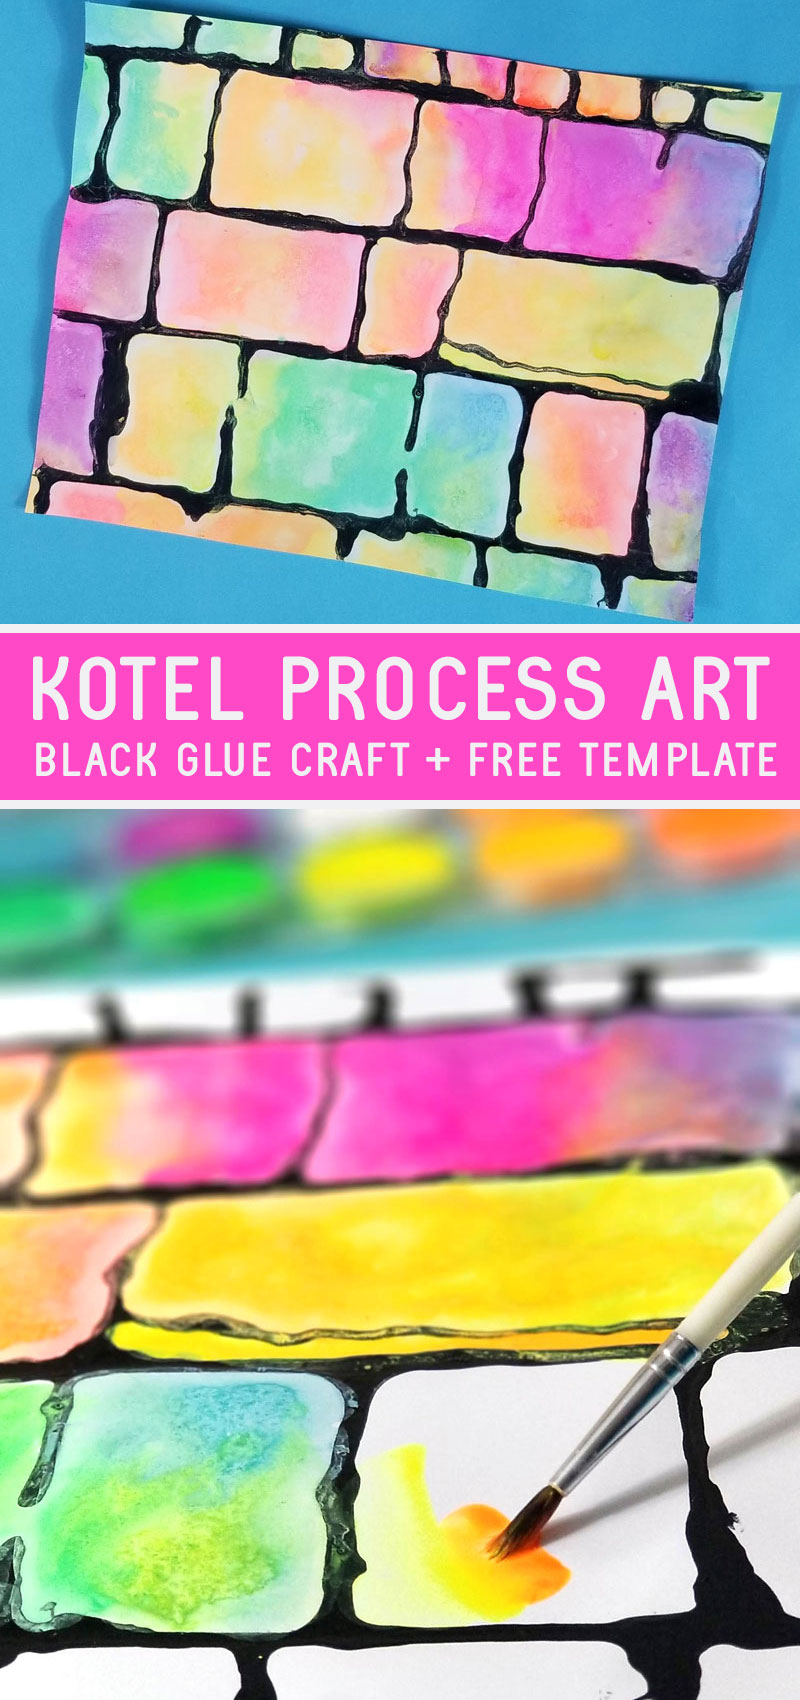 Make this gorgeous Kotel art project for kids and adults - great for Hebrew School and studying Israel and Independence Day! This beautiful black glue resist craft uses neon watercolor paints for a fun Jewish art project for kids. It makes a great Sukkah Decoration too.